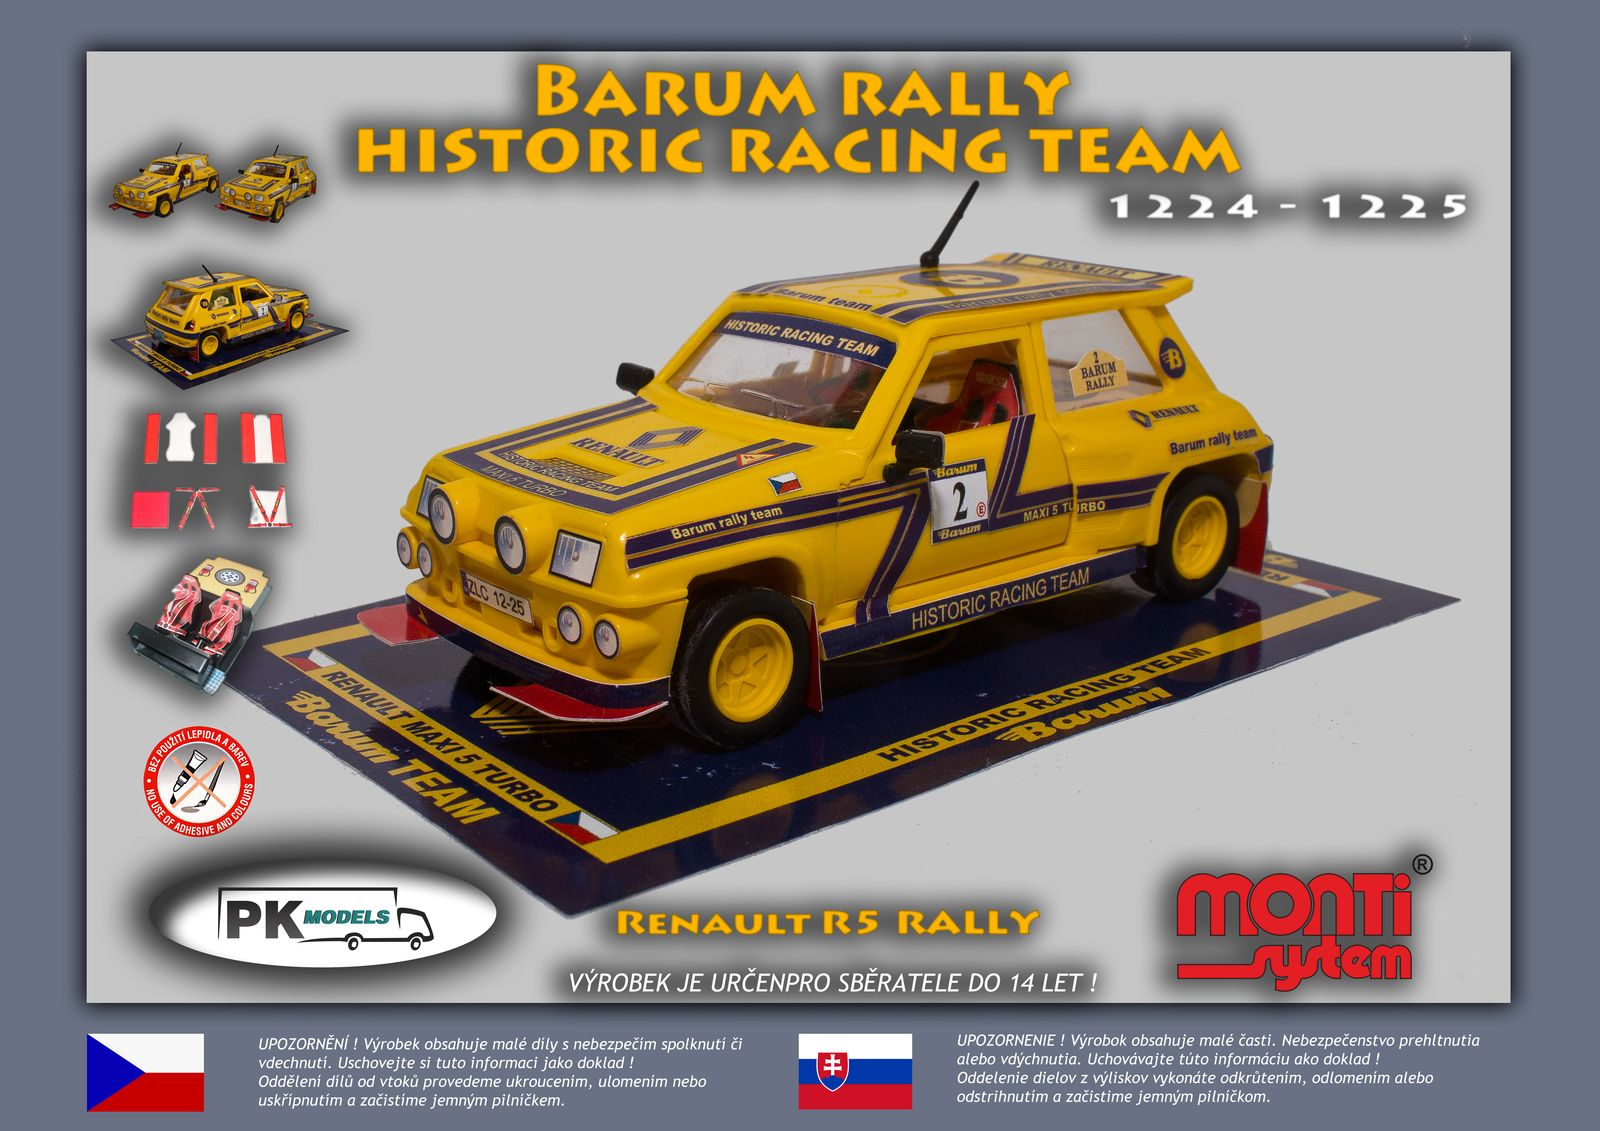 MS Renault R5 rally Barum rally historic